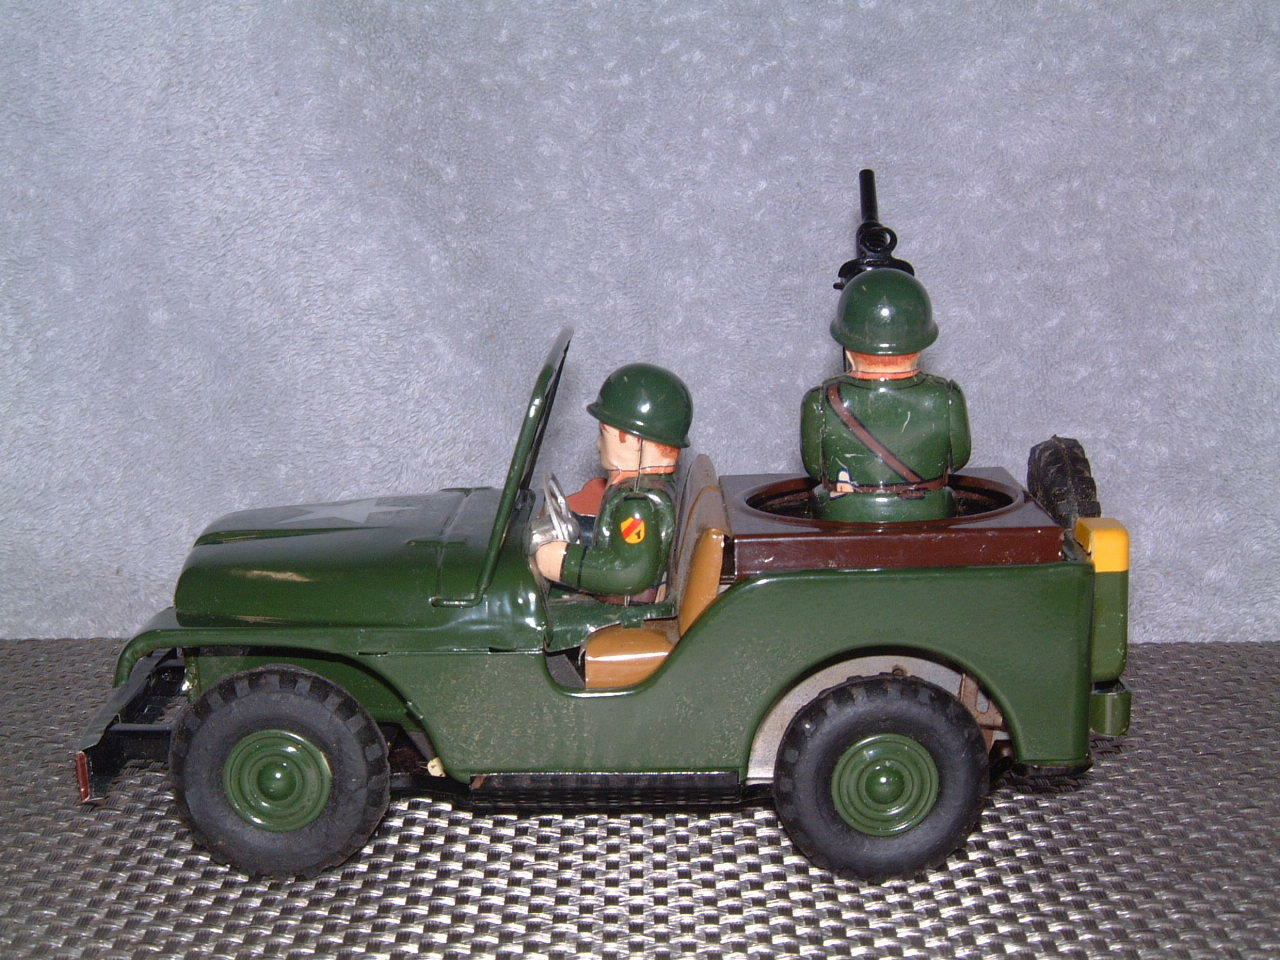 VINTAGE NOMURA SWIVEL GUN JEEP BATTERY OPERATED, OPERATED, OPERATED, FULLY WORKING W ORIGINAL BOX   aed9a8